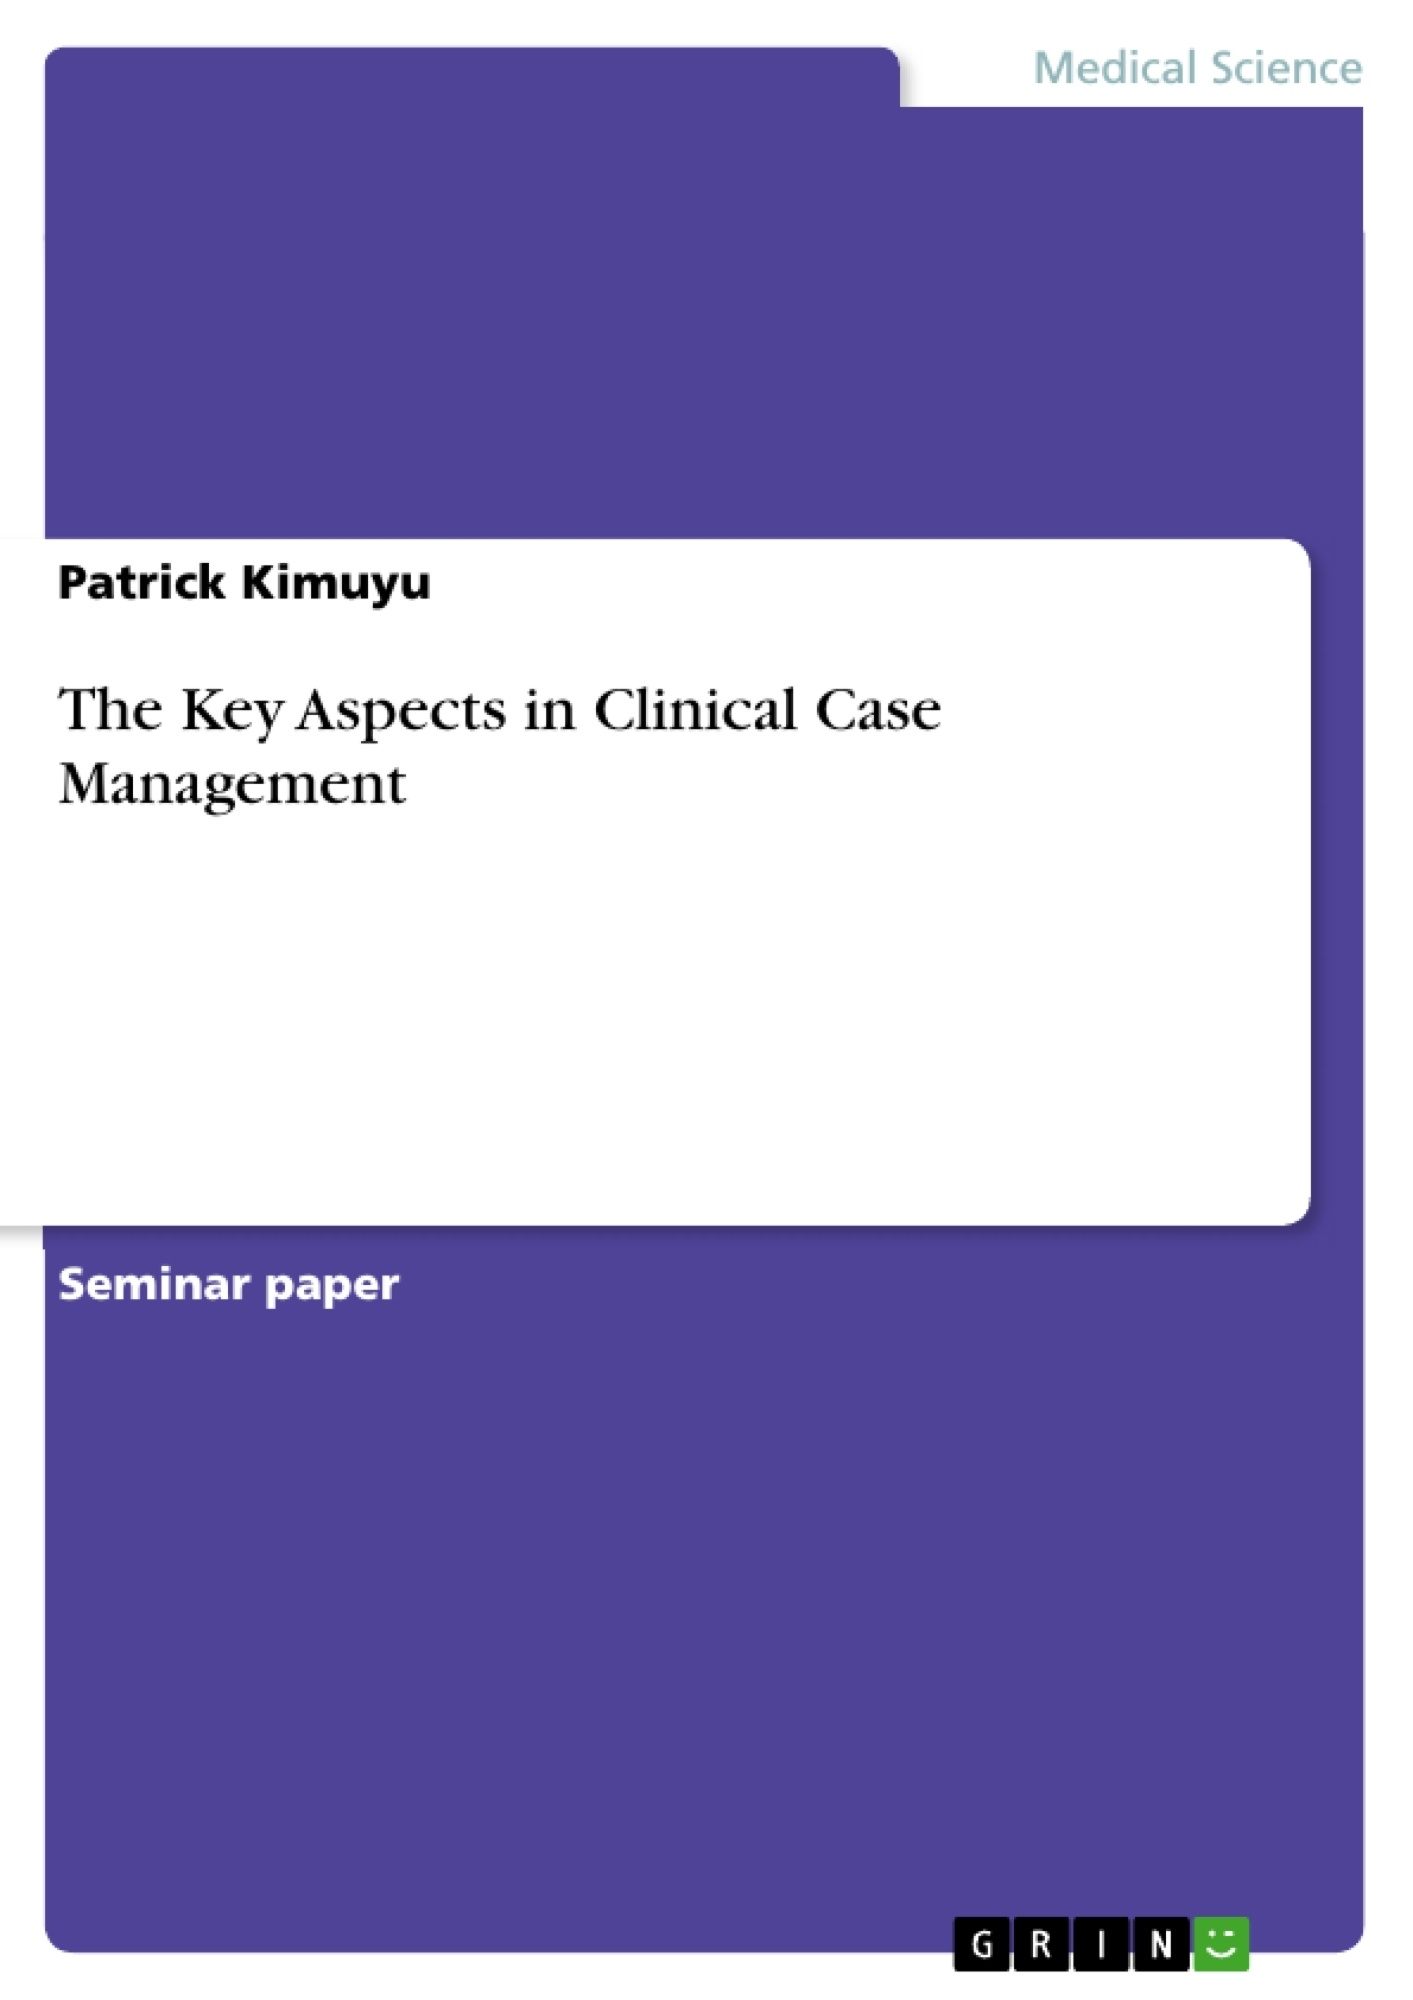 Title: The Key Aspects in Clinical Case Management